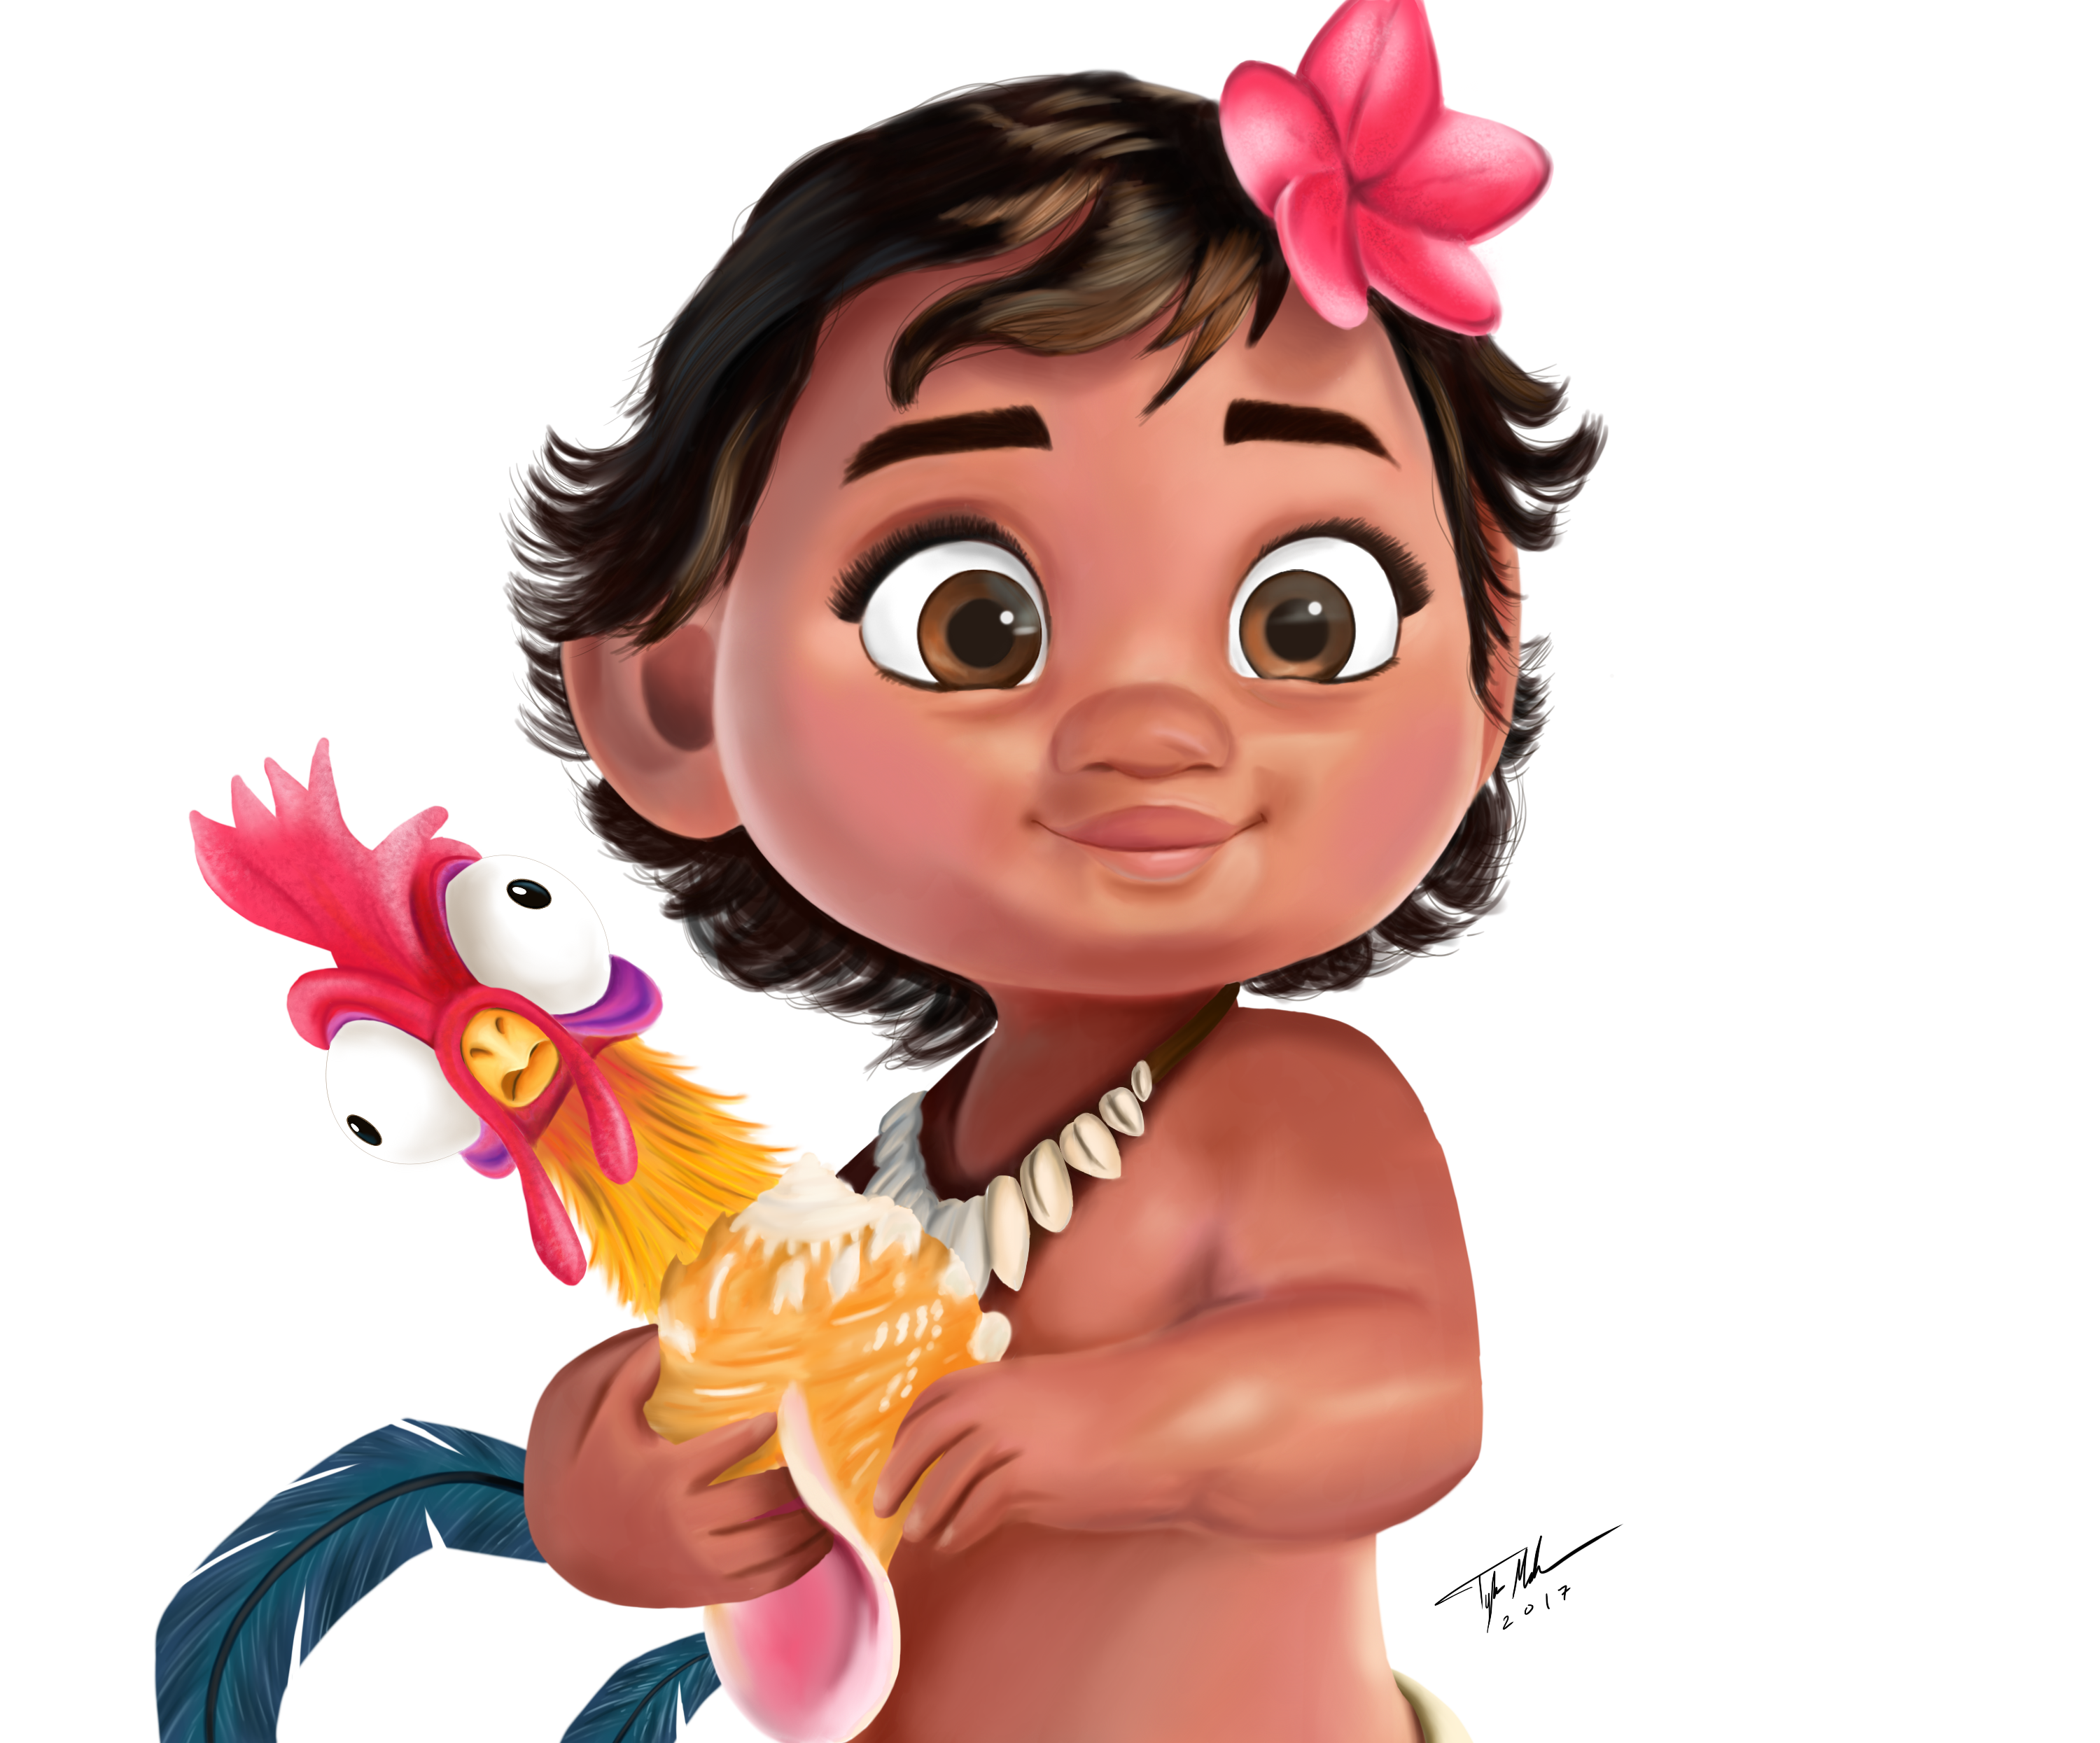 Cutest Png Free Cutest Png Transparent Images 54897 Pngio